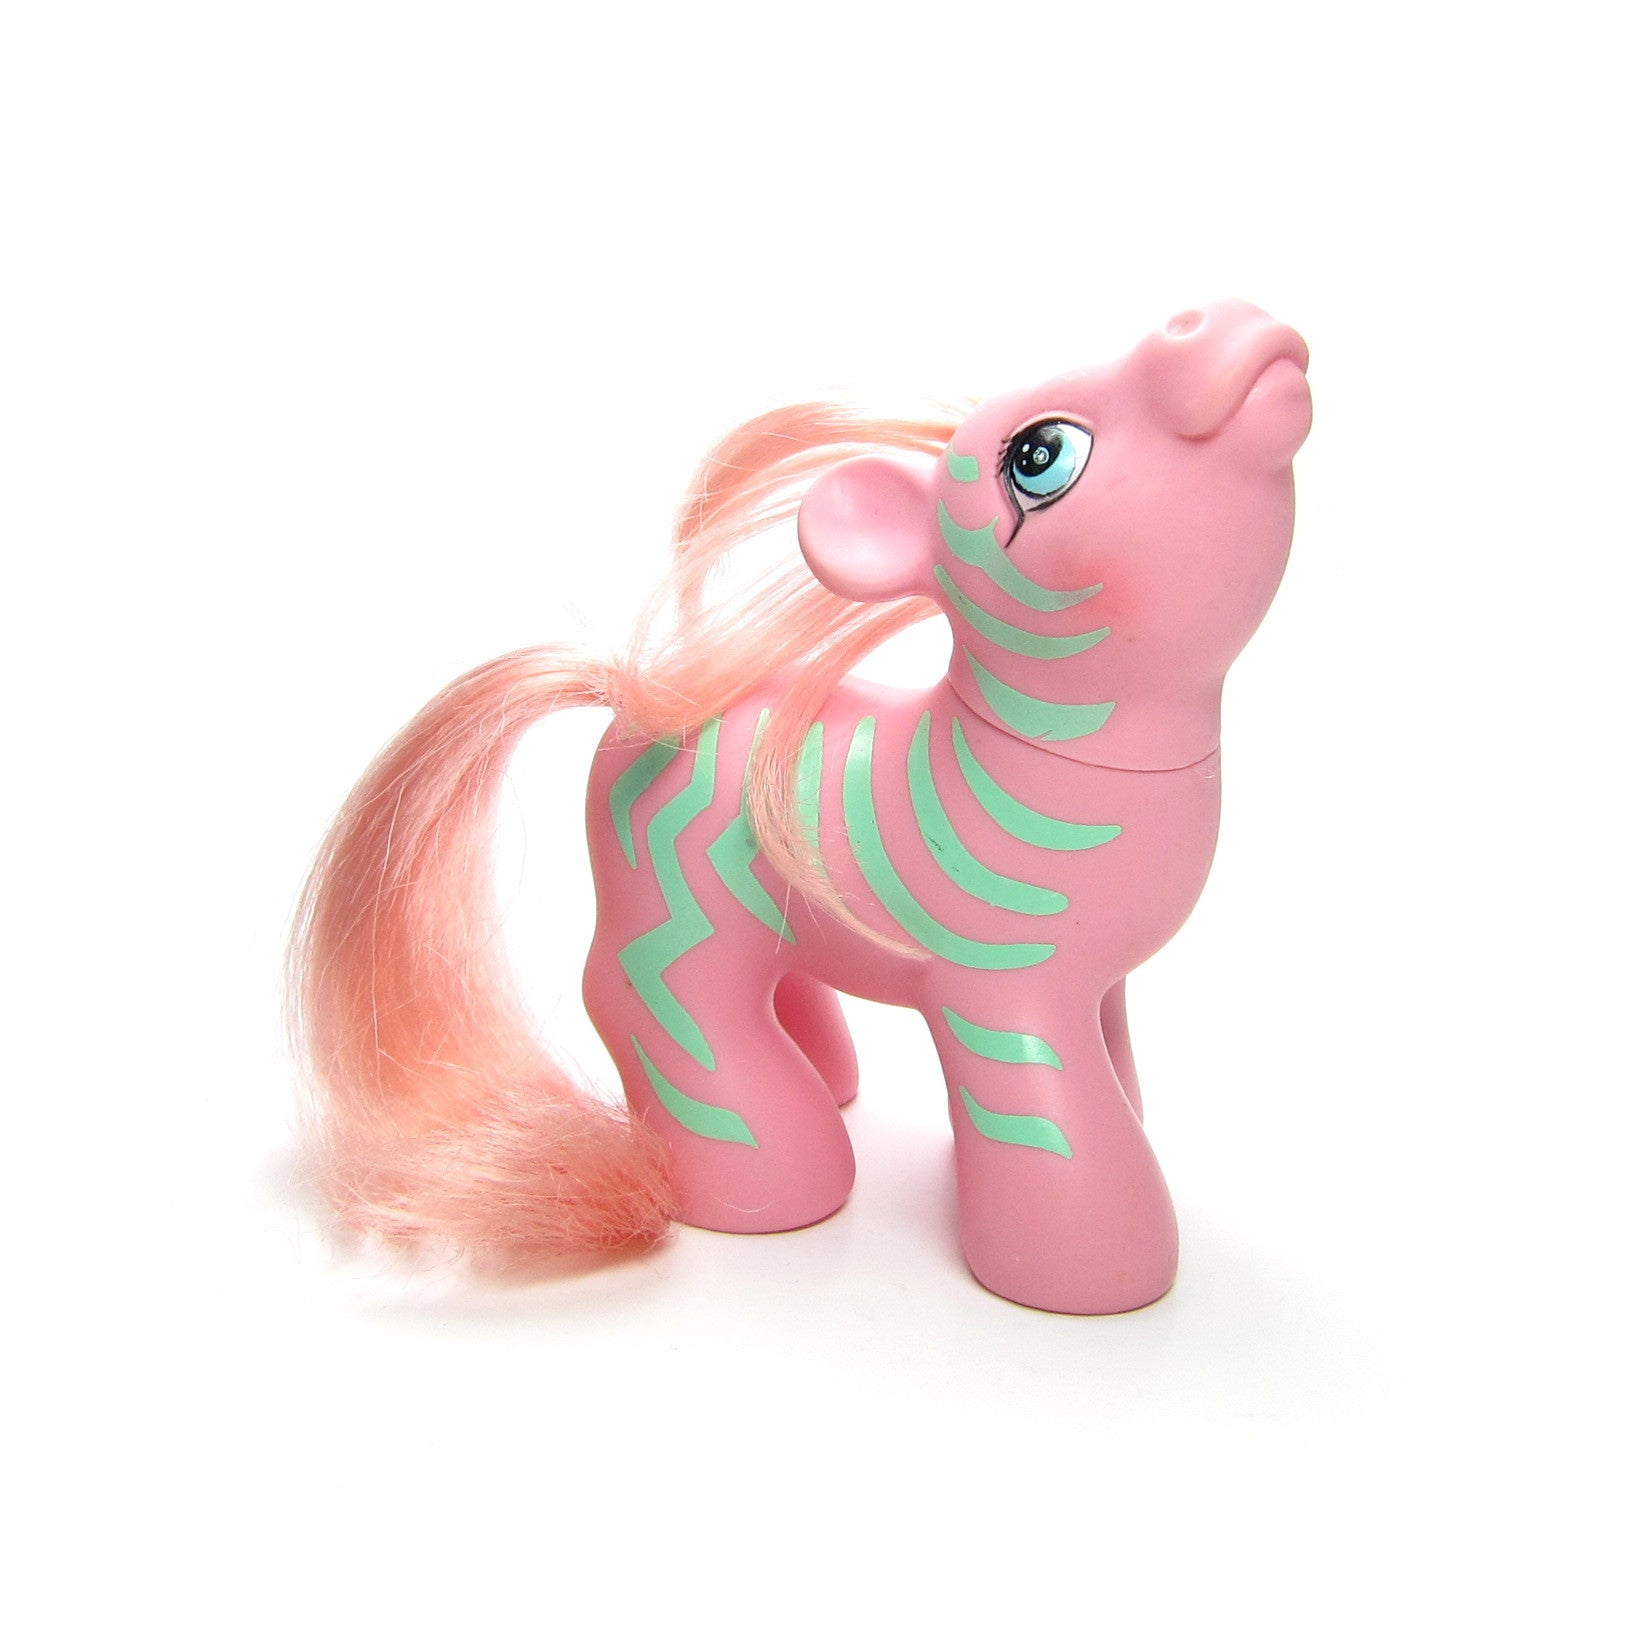 Zig Zag the Zebra My Little Pony Friends